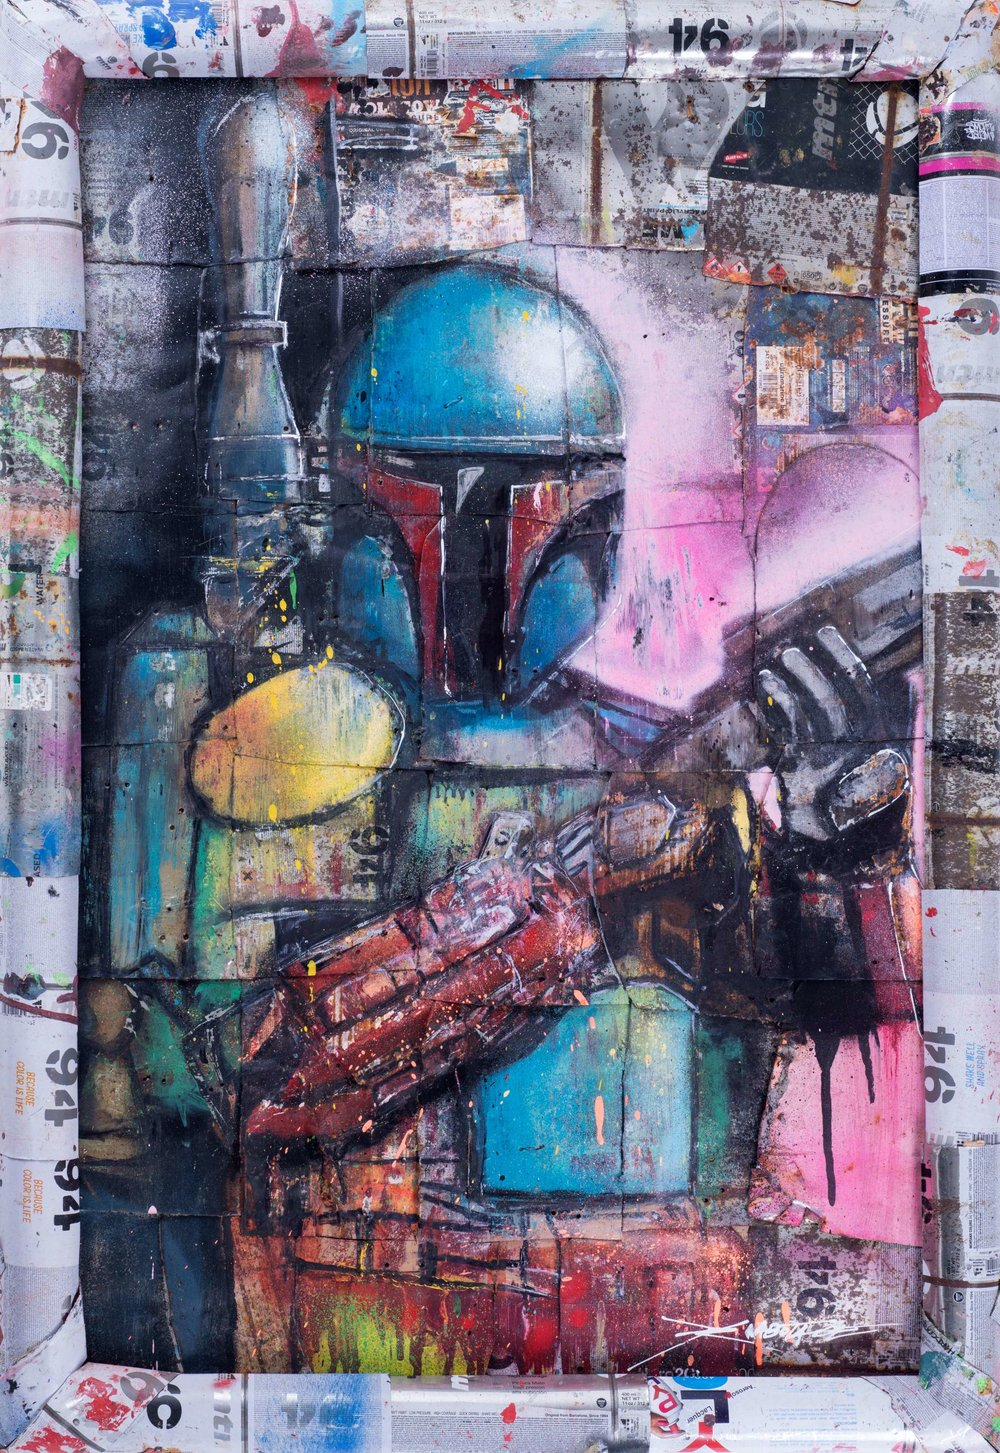 """Boba Fet"" Spray paint, graffiti markers, ink on the recycled spray can base 97 x 66 cm 2018"